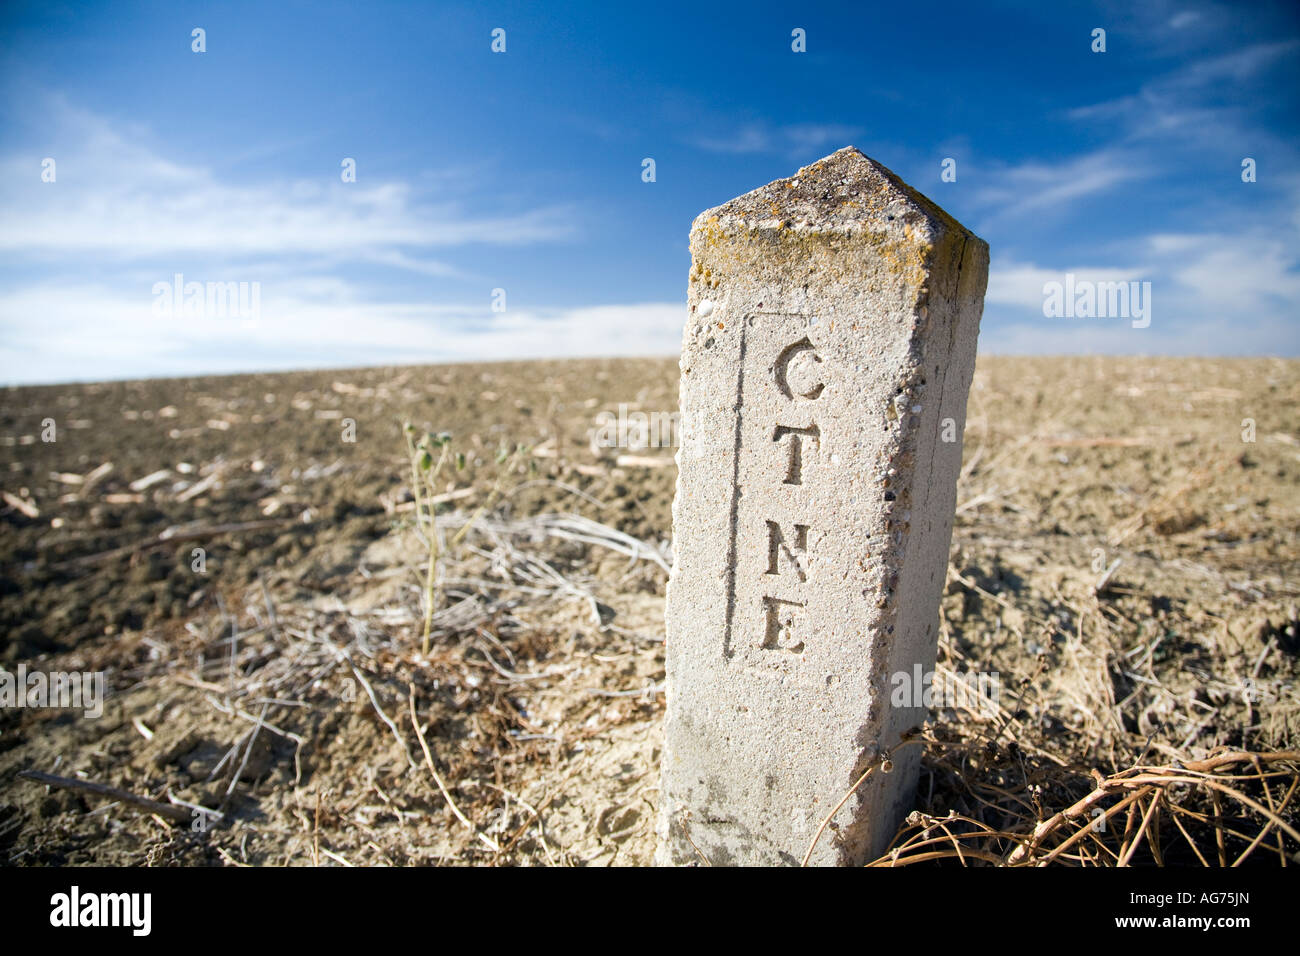 Marker on countryside of Spanish Telefonica corporation network Spain - Stock Image